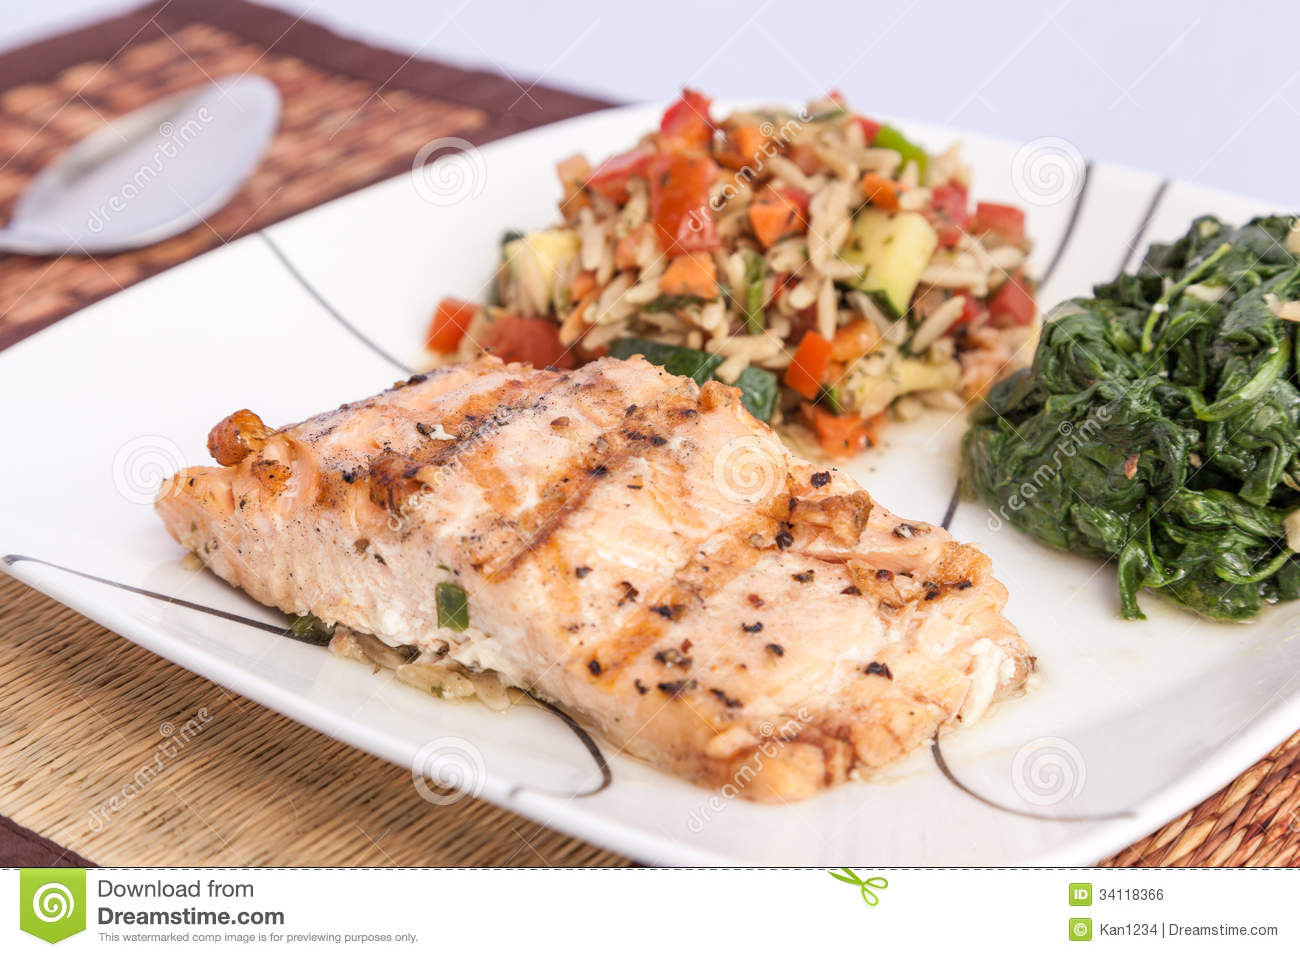 Healthy Side Dishes For Fish  Delicious Grill Salmon With Side Dishes Stock